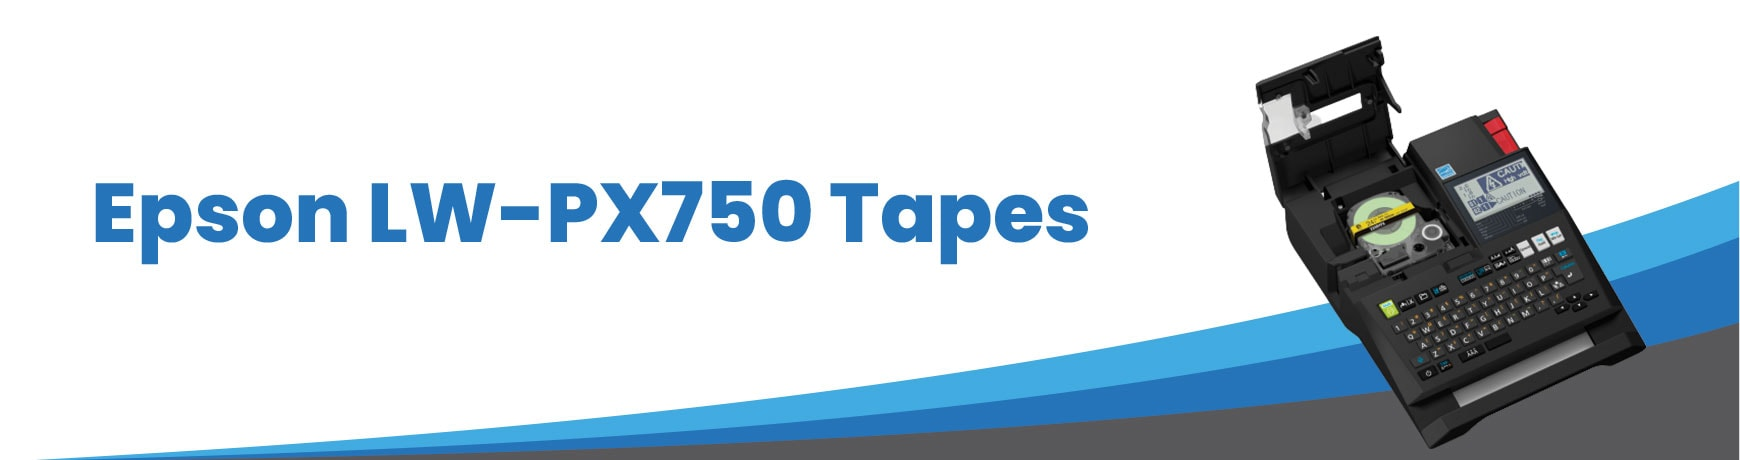 Epson LW-PX750 Tapes